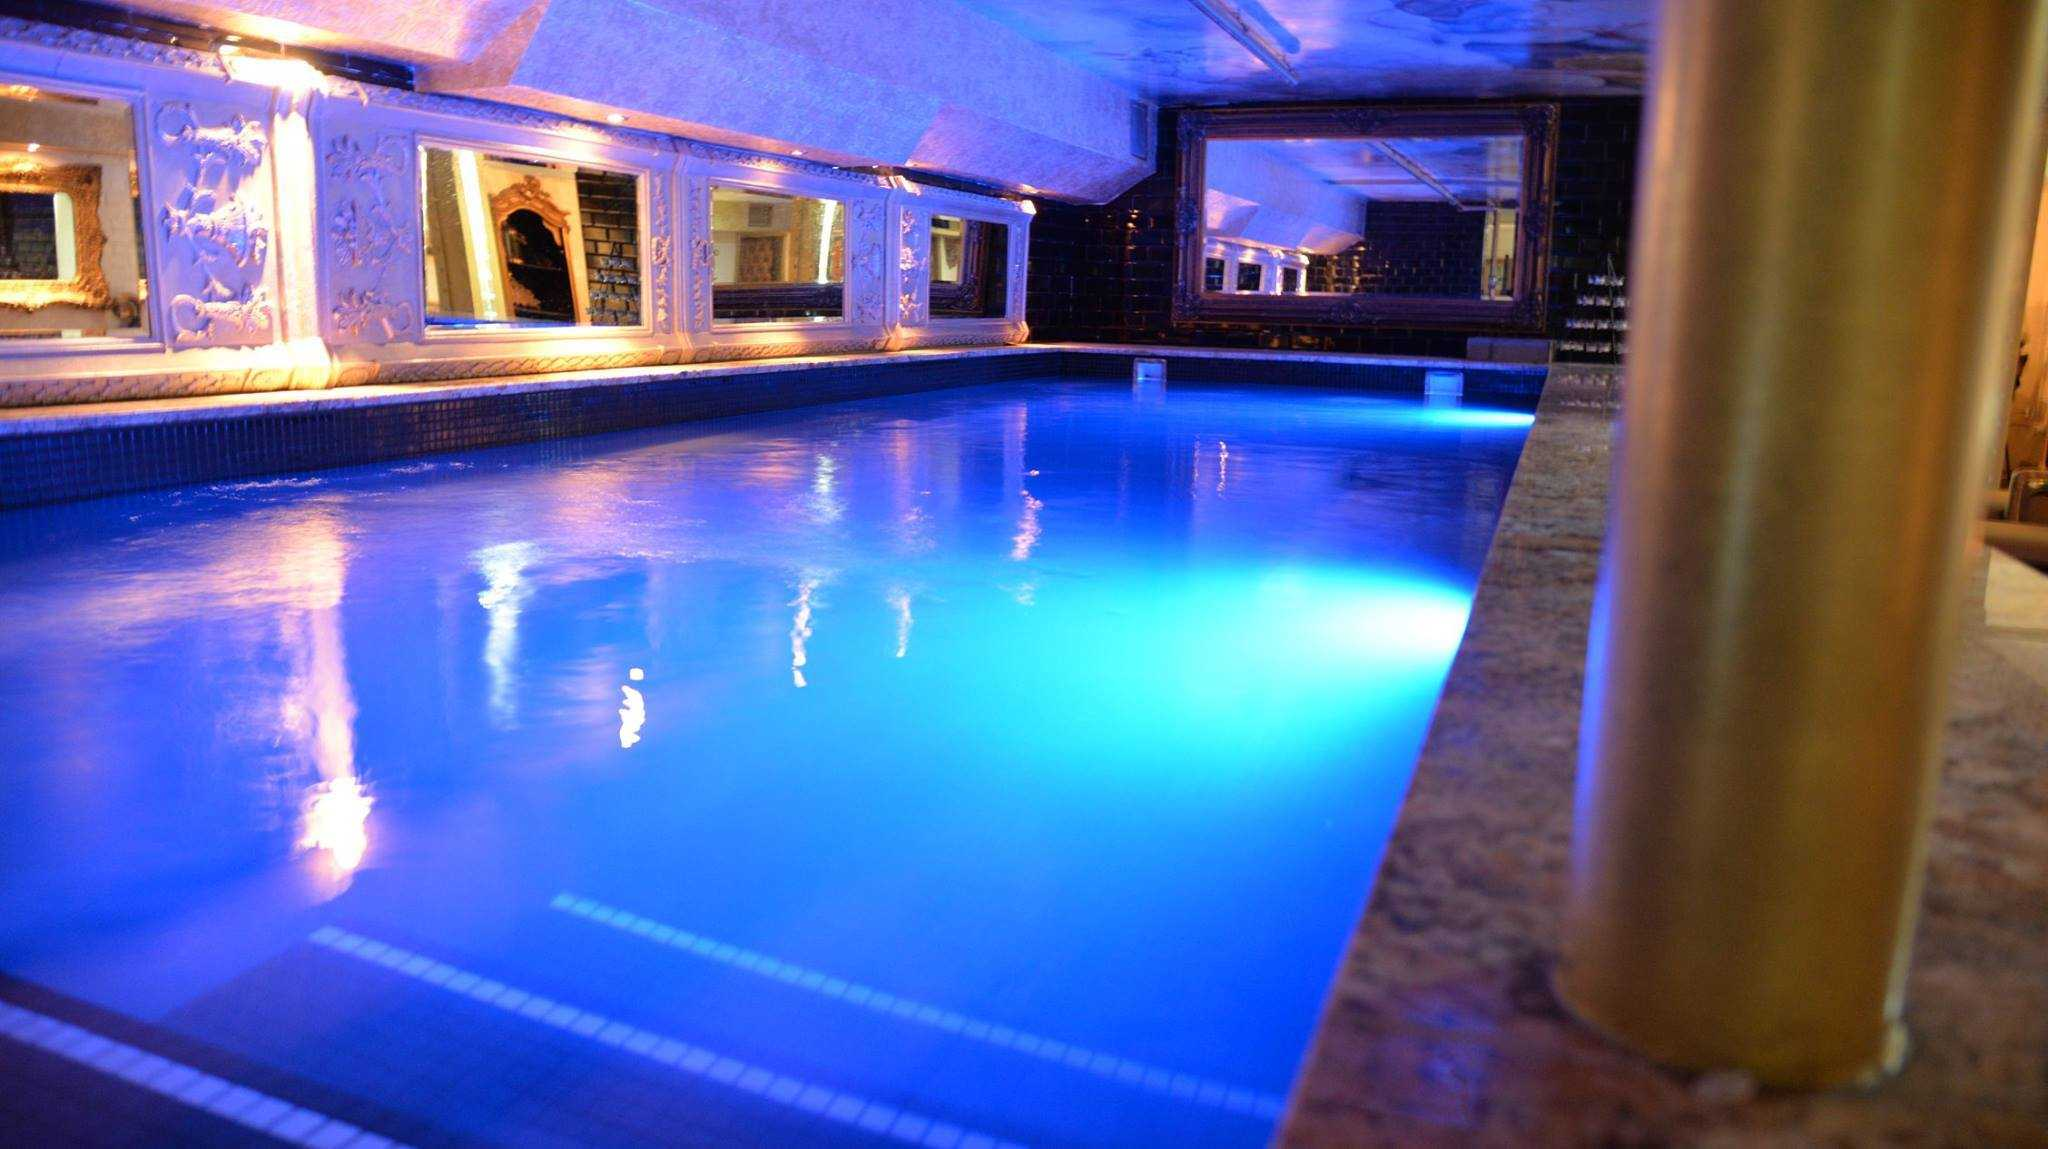 Liverpool pool party venue morgan 39 s vault for Liverpool hotels with swimming pool